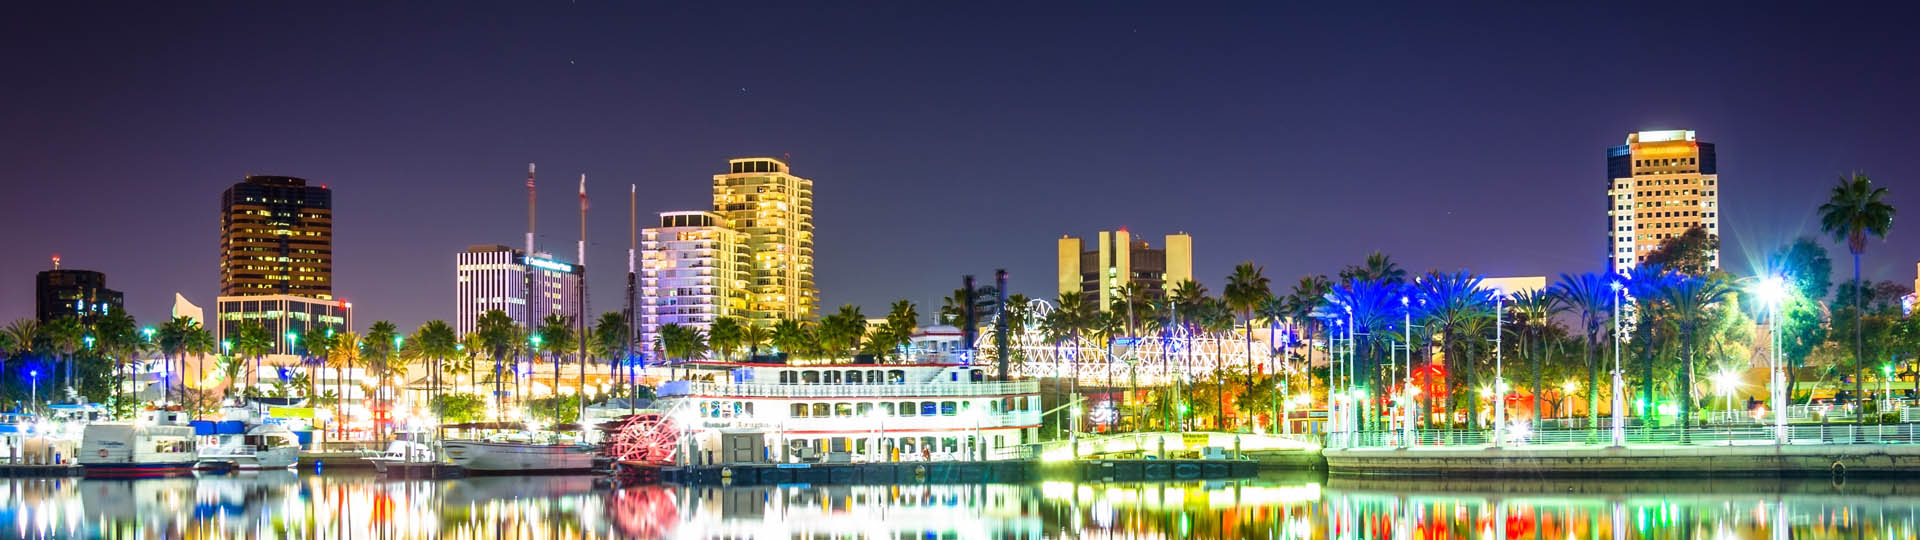 Investors In Long Beach, California